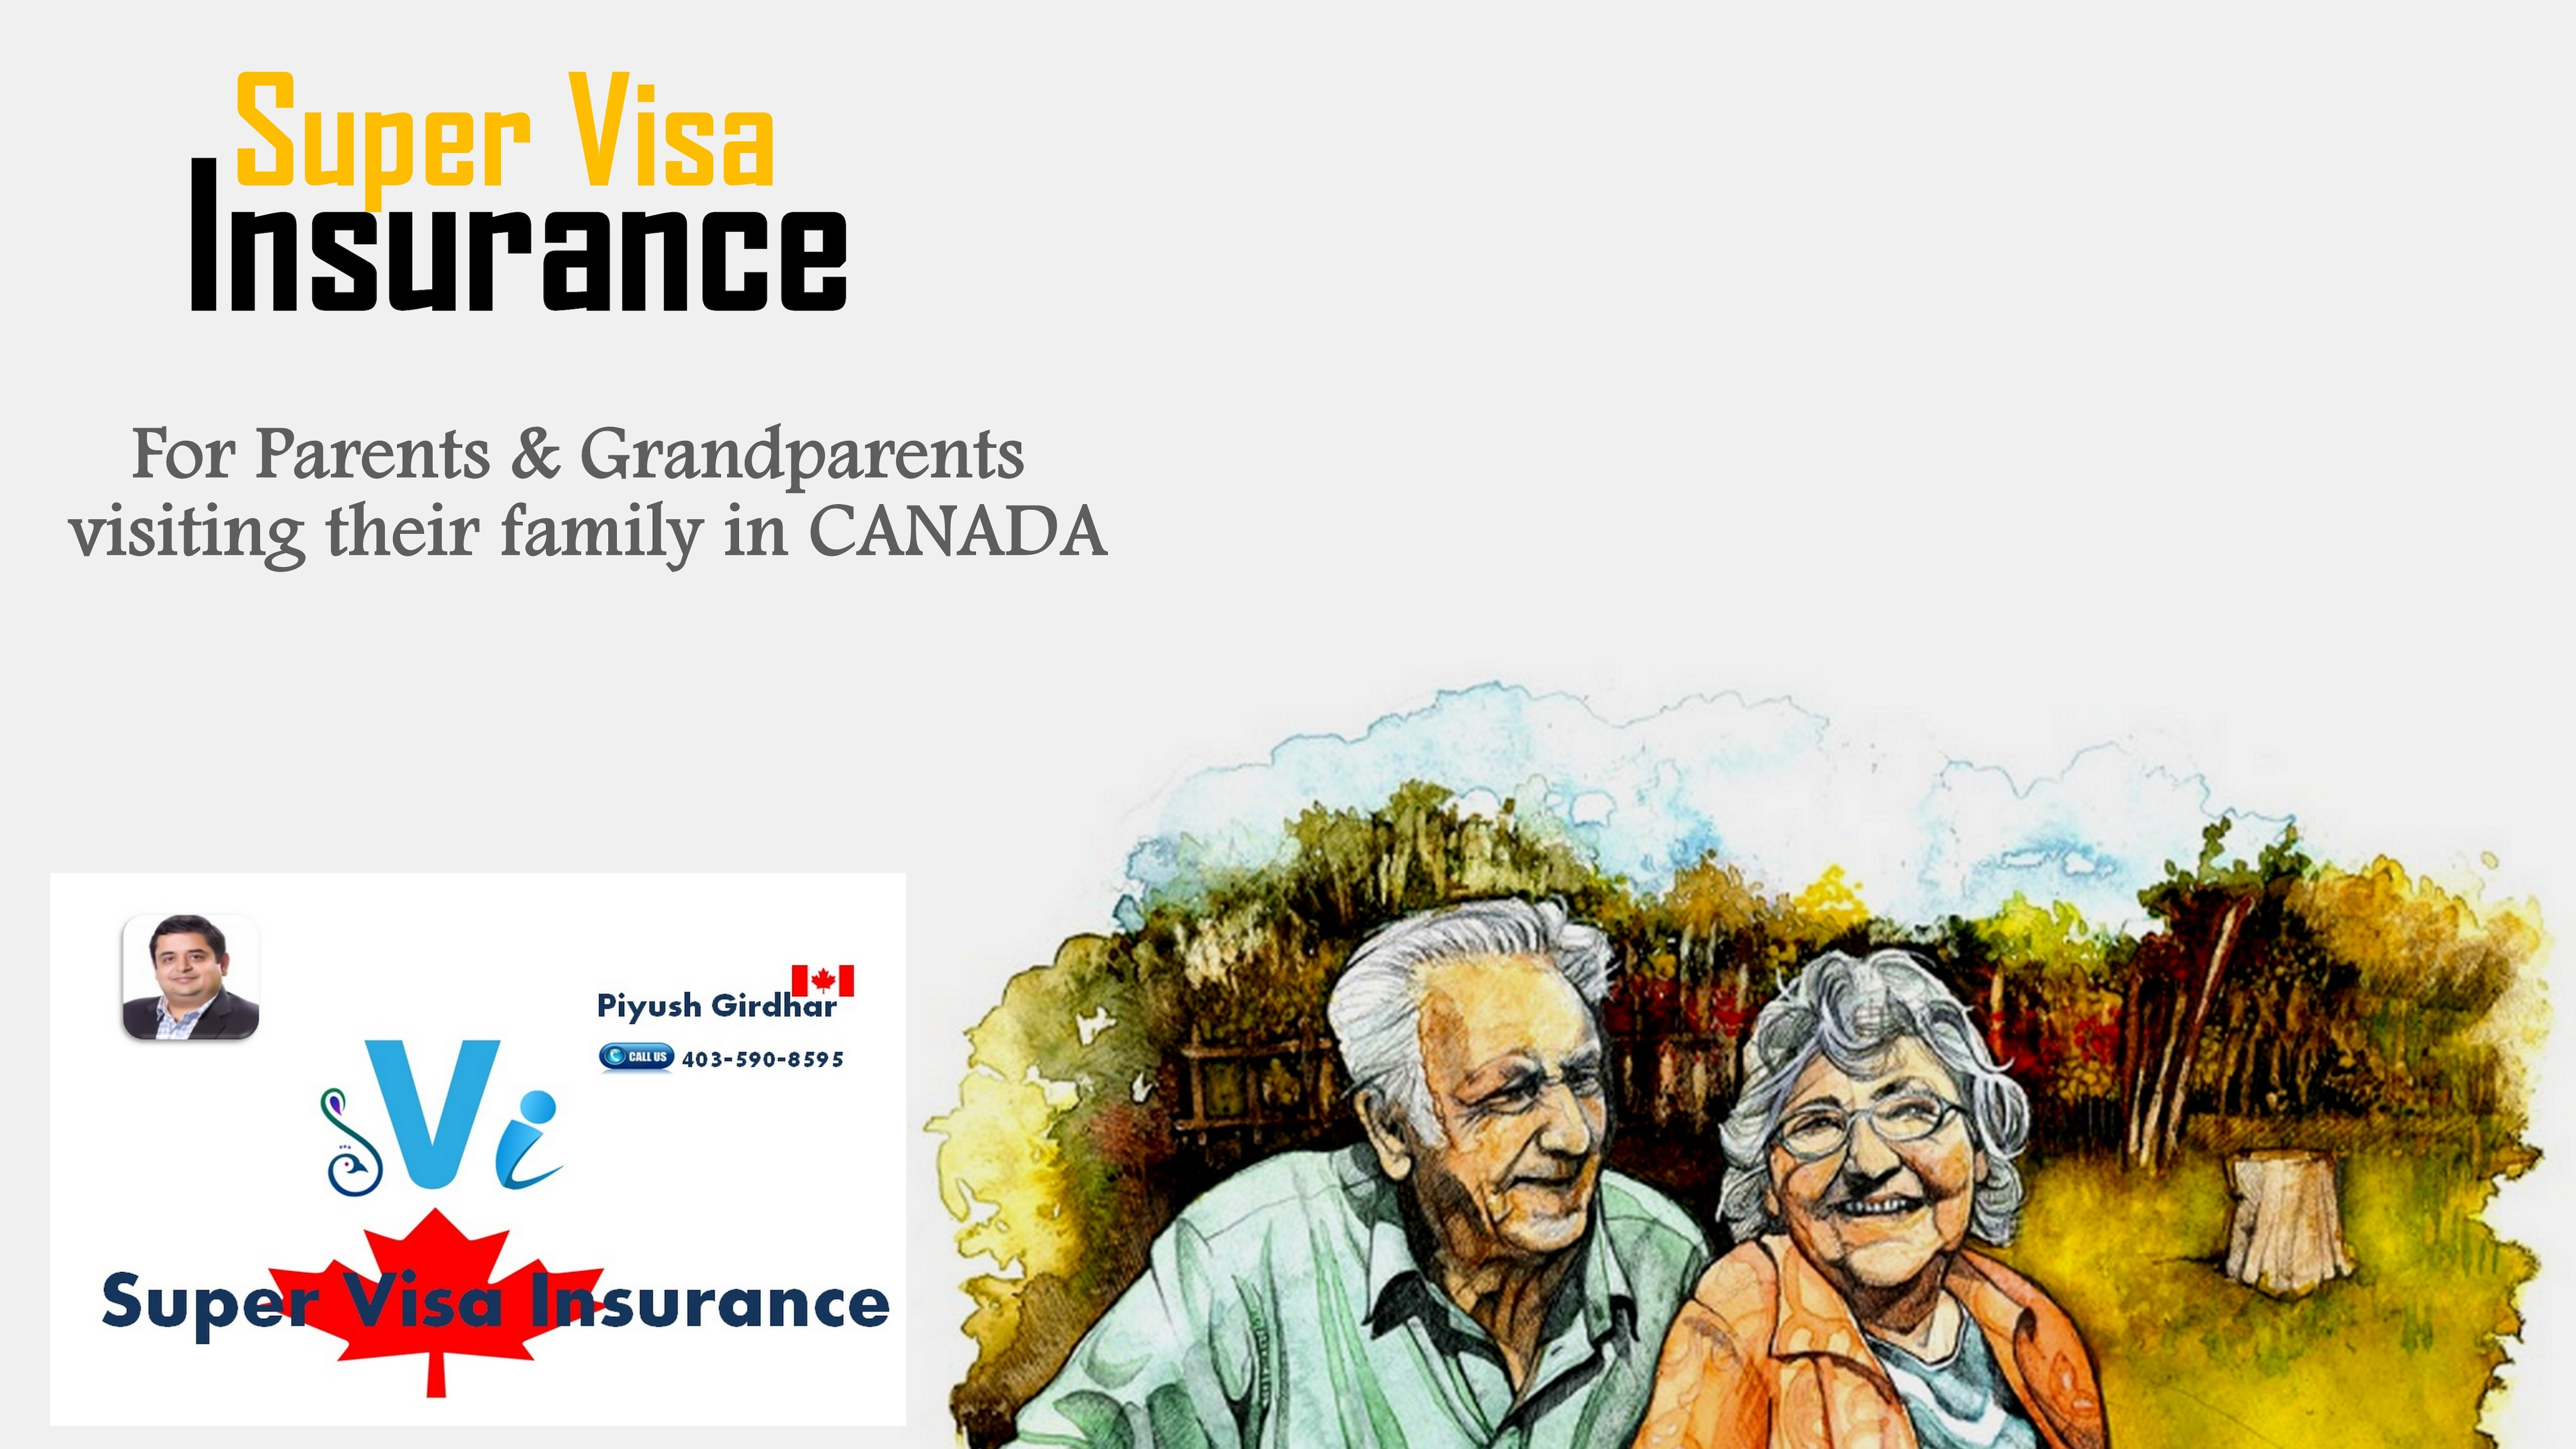 Super Visa Insurance Lowest rate guaranteed..!! Super visa insurance for parents and Grandparents compare super visa quote call now instantly.  super visa insurance quote  parents super visa insurance  super visa insurance quotes  super visa insurance  manulife travel insurance  super visa canada